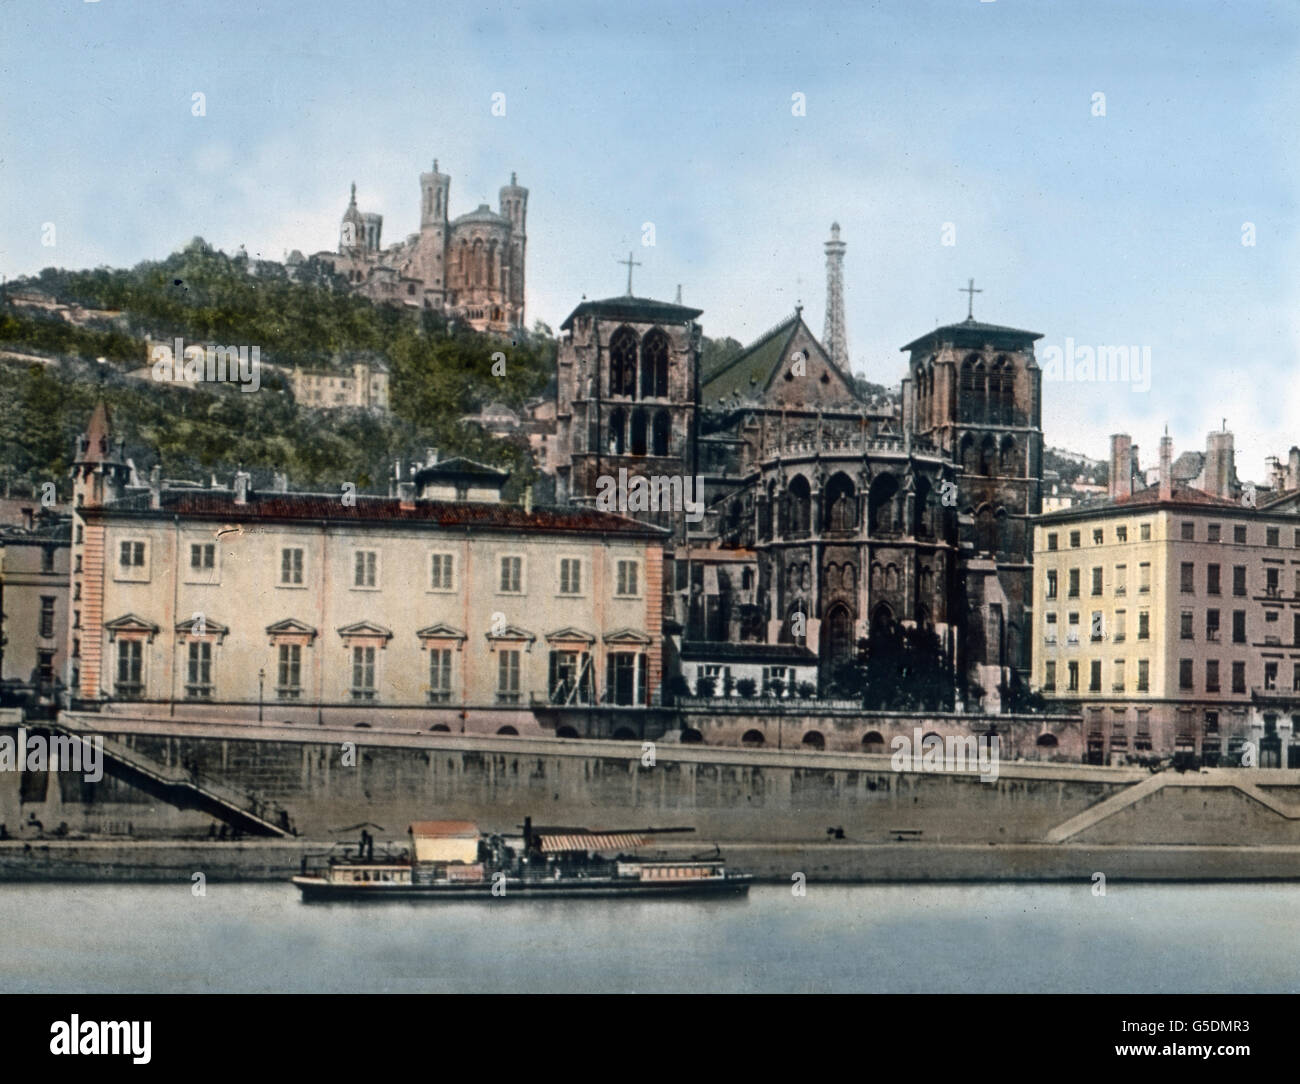 Die Wallfahrtskirche Notre-Dame de Fourviere in Lyon.  France, Lyon, Rhone, Europe, travel, 1910s, 1920s, 20th century, - Stock Image